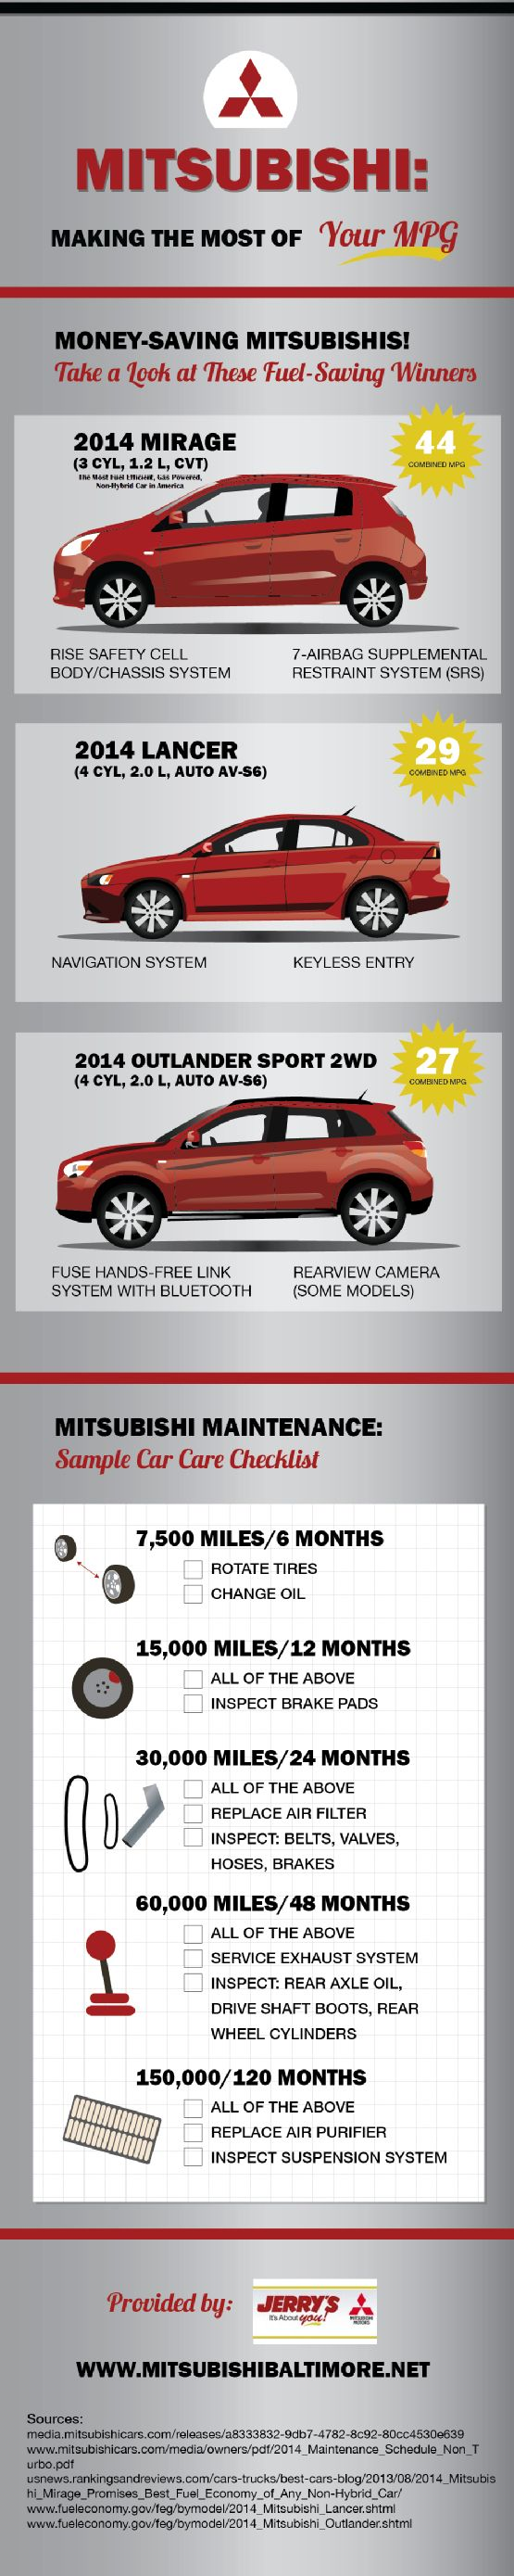 270 best Car and Automotive Infographics images on Pinterest ...